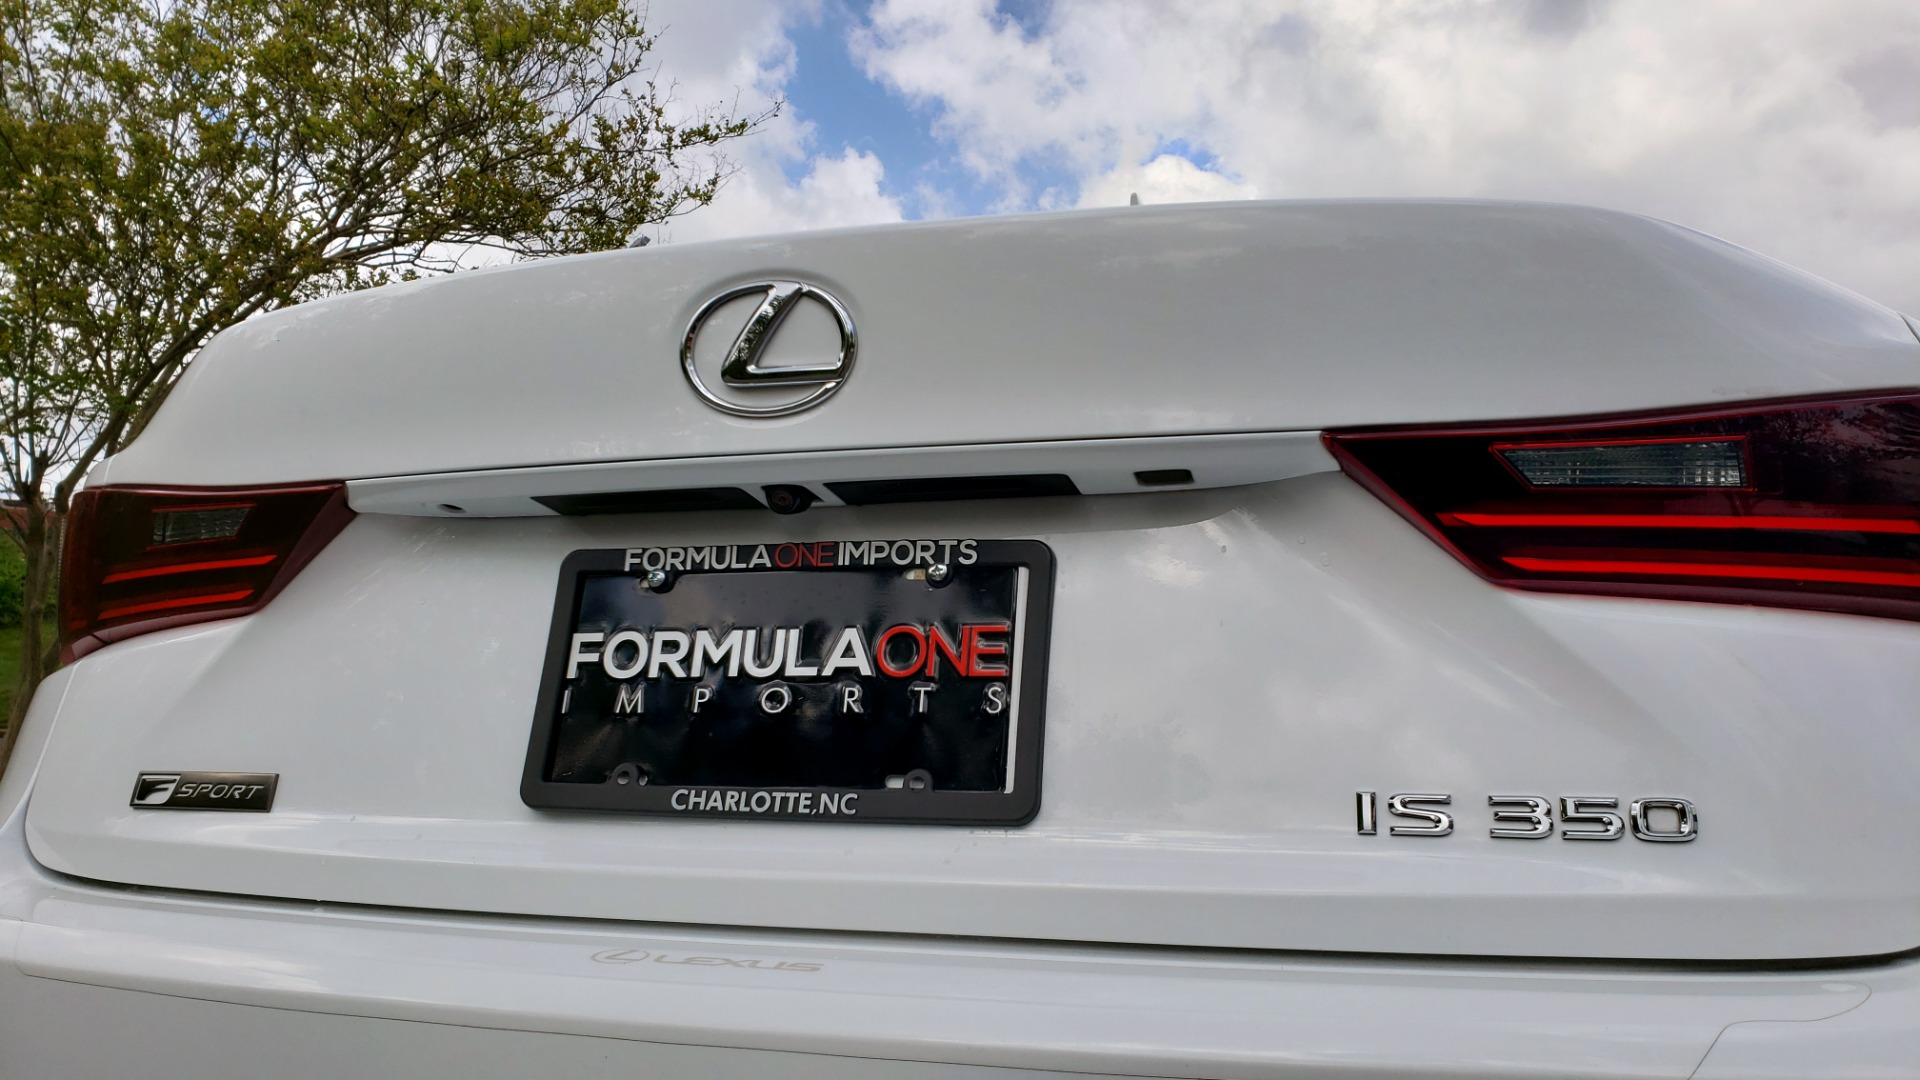 Used 2016 Lexus IS 350 F-SPORT / NAV / BSM / SUNROOF / REARVIEW / VENT SEATS for sale Sold at Formula Imports in Charlotte NC 28227 16